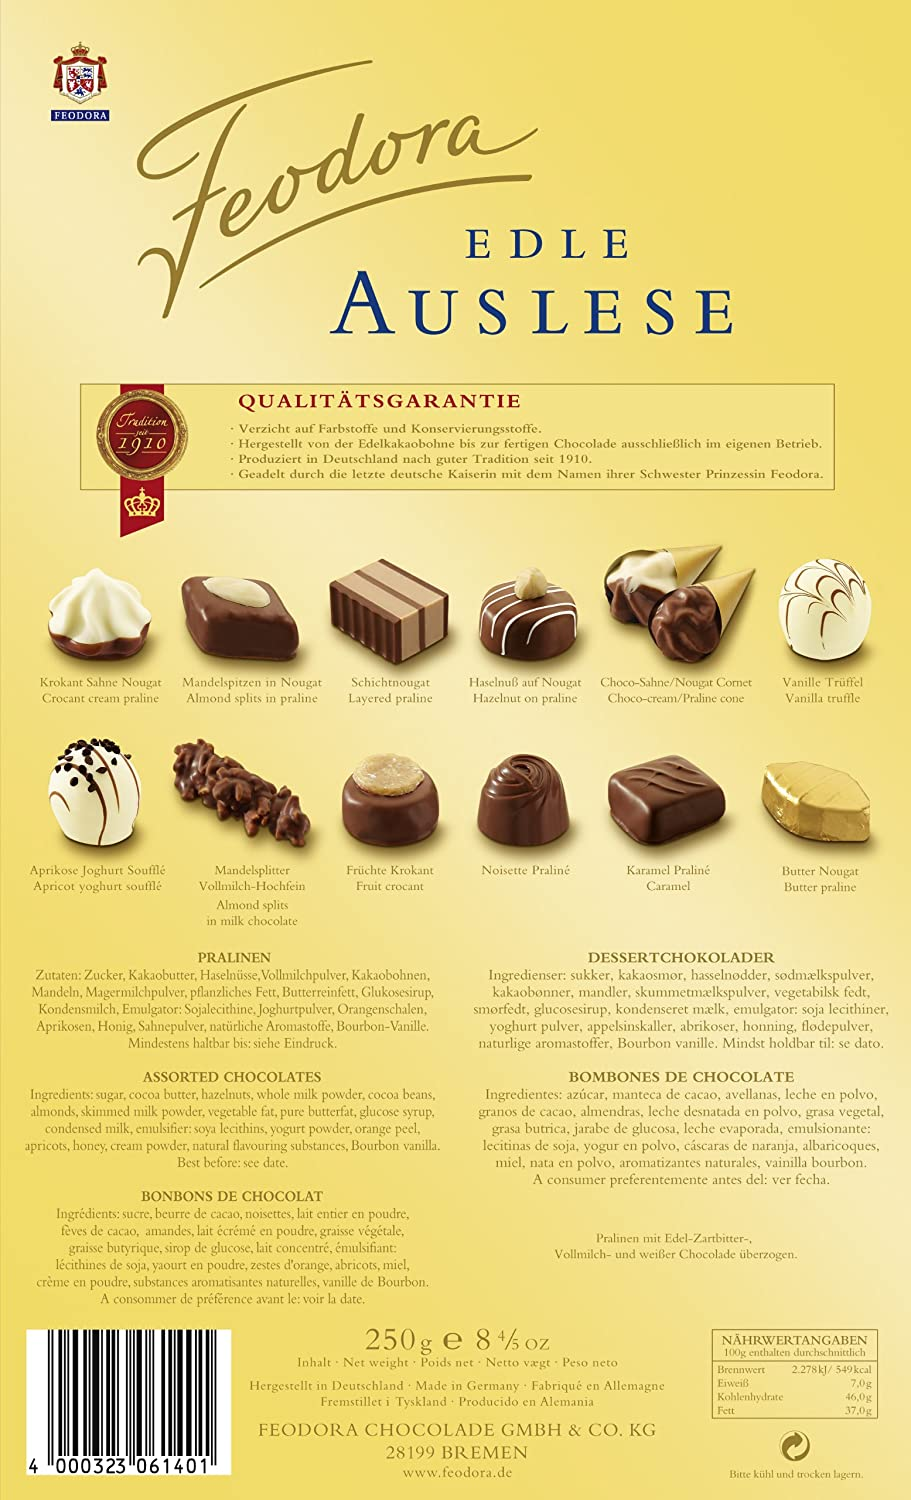 Amazon.com : Feodora Confiserie-Pralinés Edle Auslese ohne Alkohol, 1er Pack (1 x 250 g) : Chocolate Assortments And Samplers : Grocery & Gourmet Food